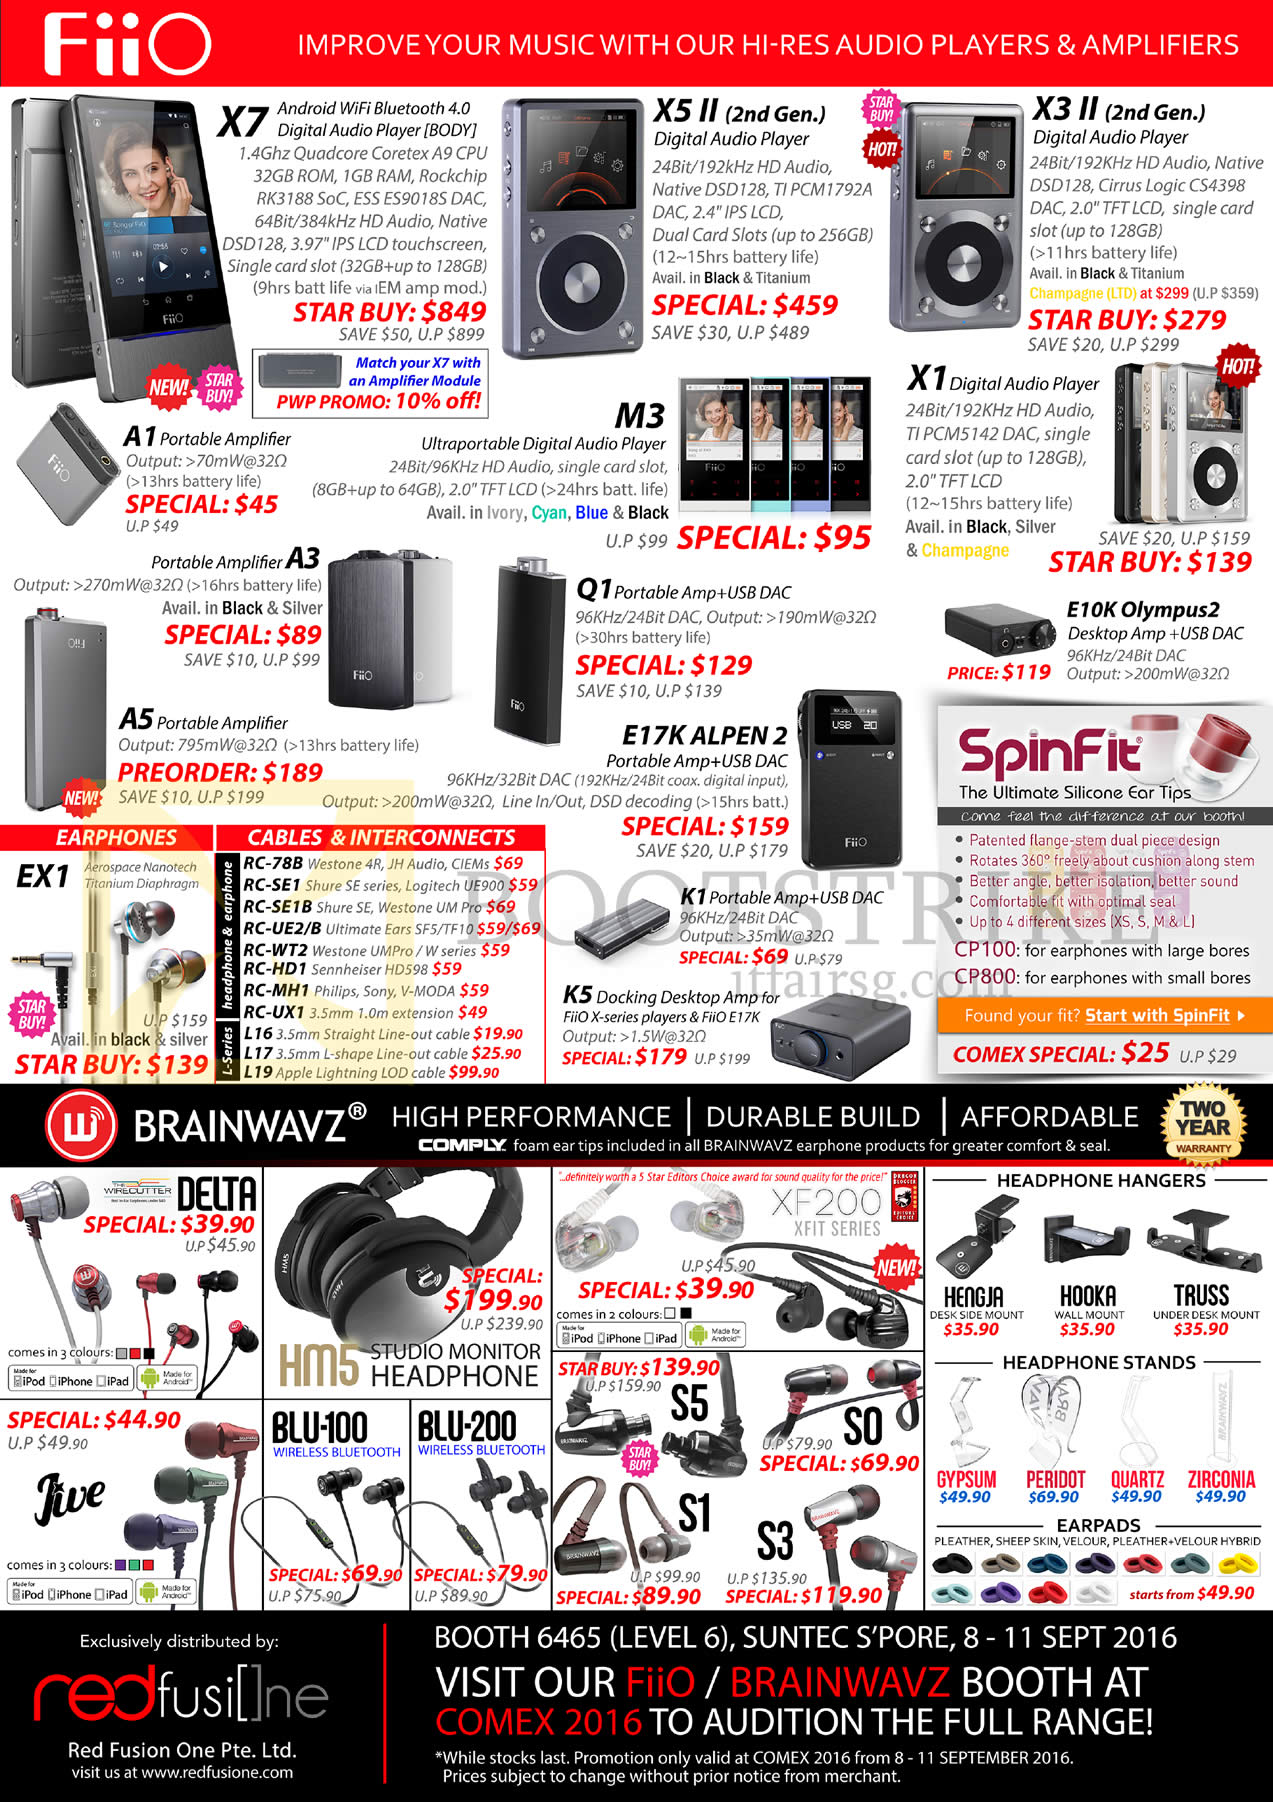 COMEX 2016 price list image brochure of Treoo Fiio Audio Player, Amplifier, Headphones, Earphones, Headphone Hangers, X7, X5 II, X3 II, A1, M3, X1, A5, E17K Alpen 2, K1, EX1, Delta, Blu-100, 200, S1, S3